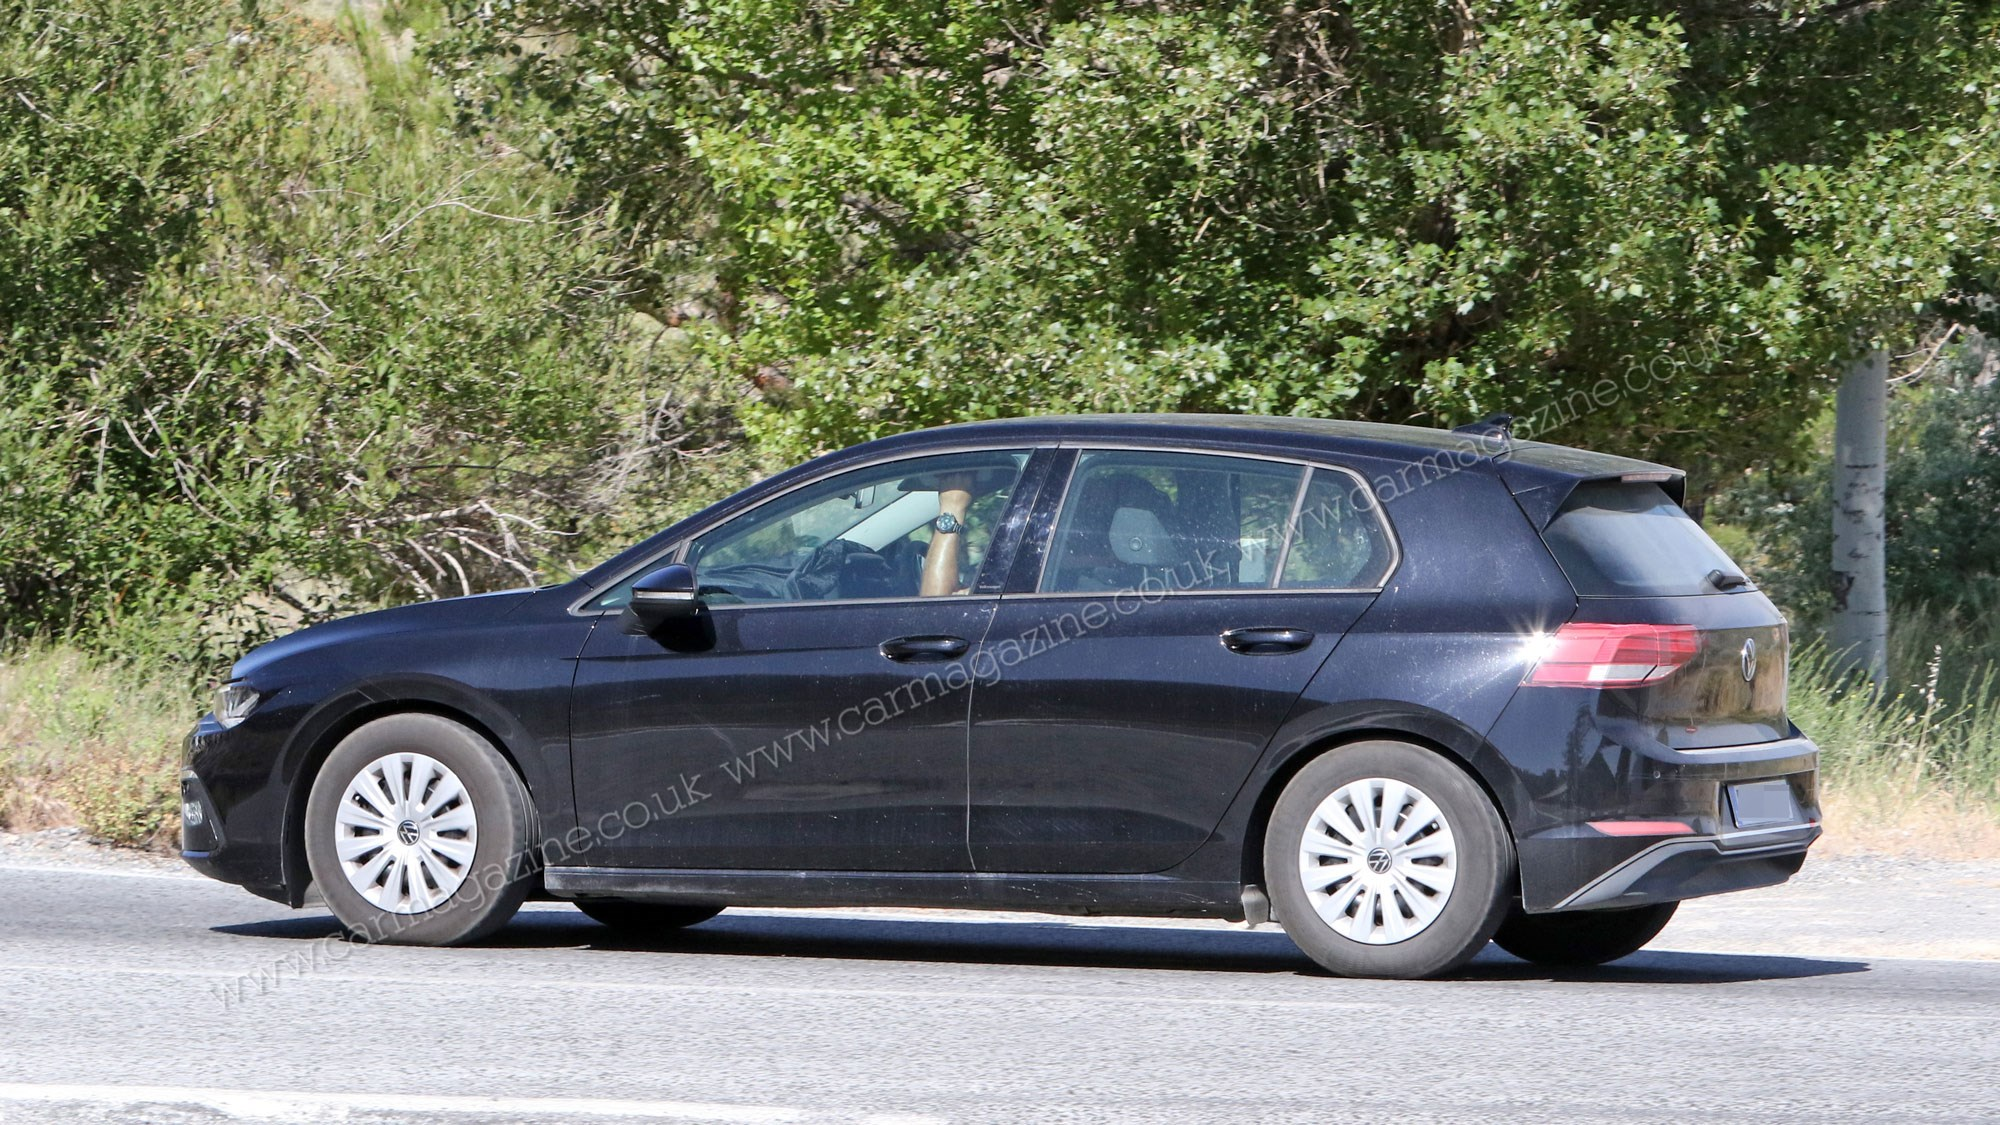 Vw Golf 2020 Leaked This Is The All 2019 09 10